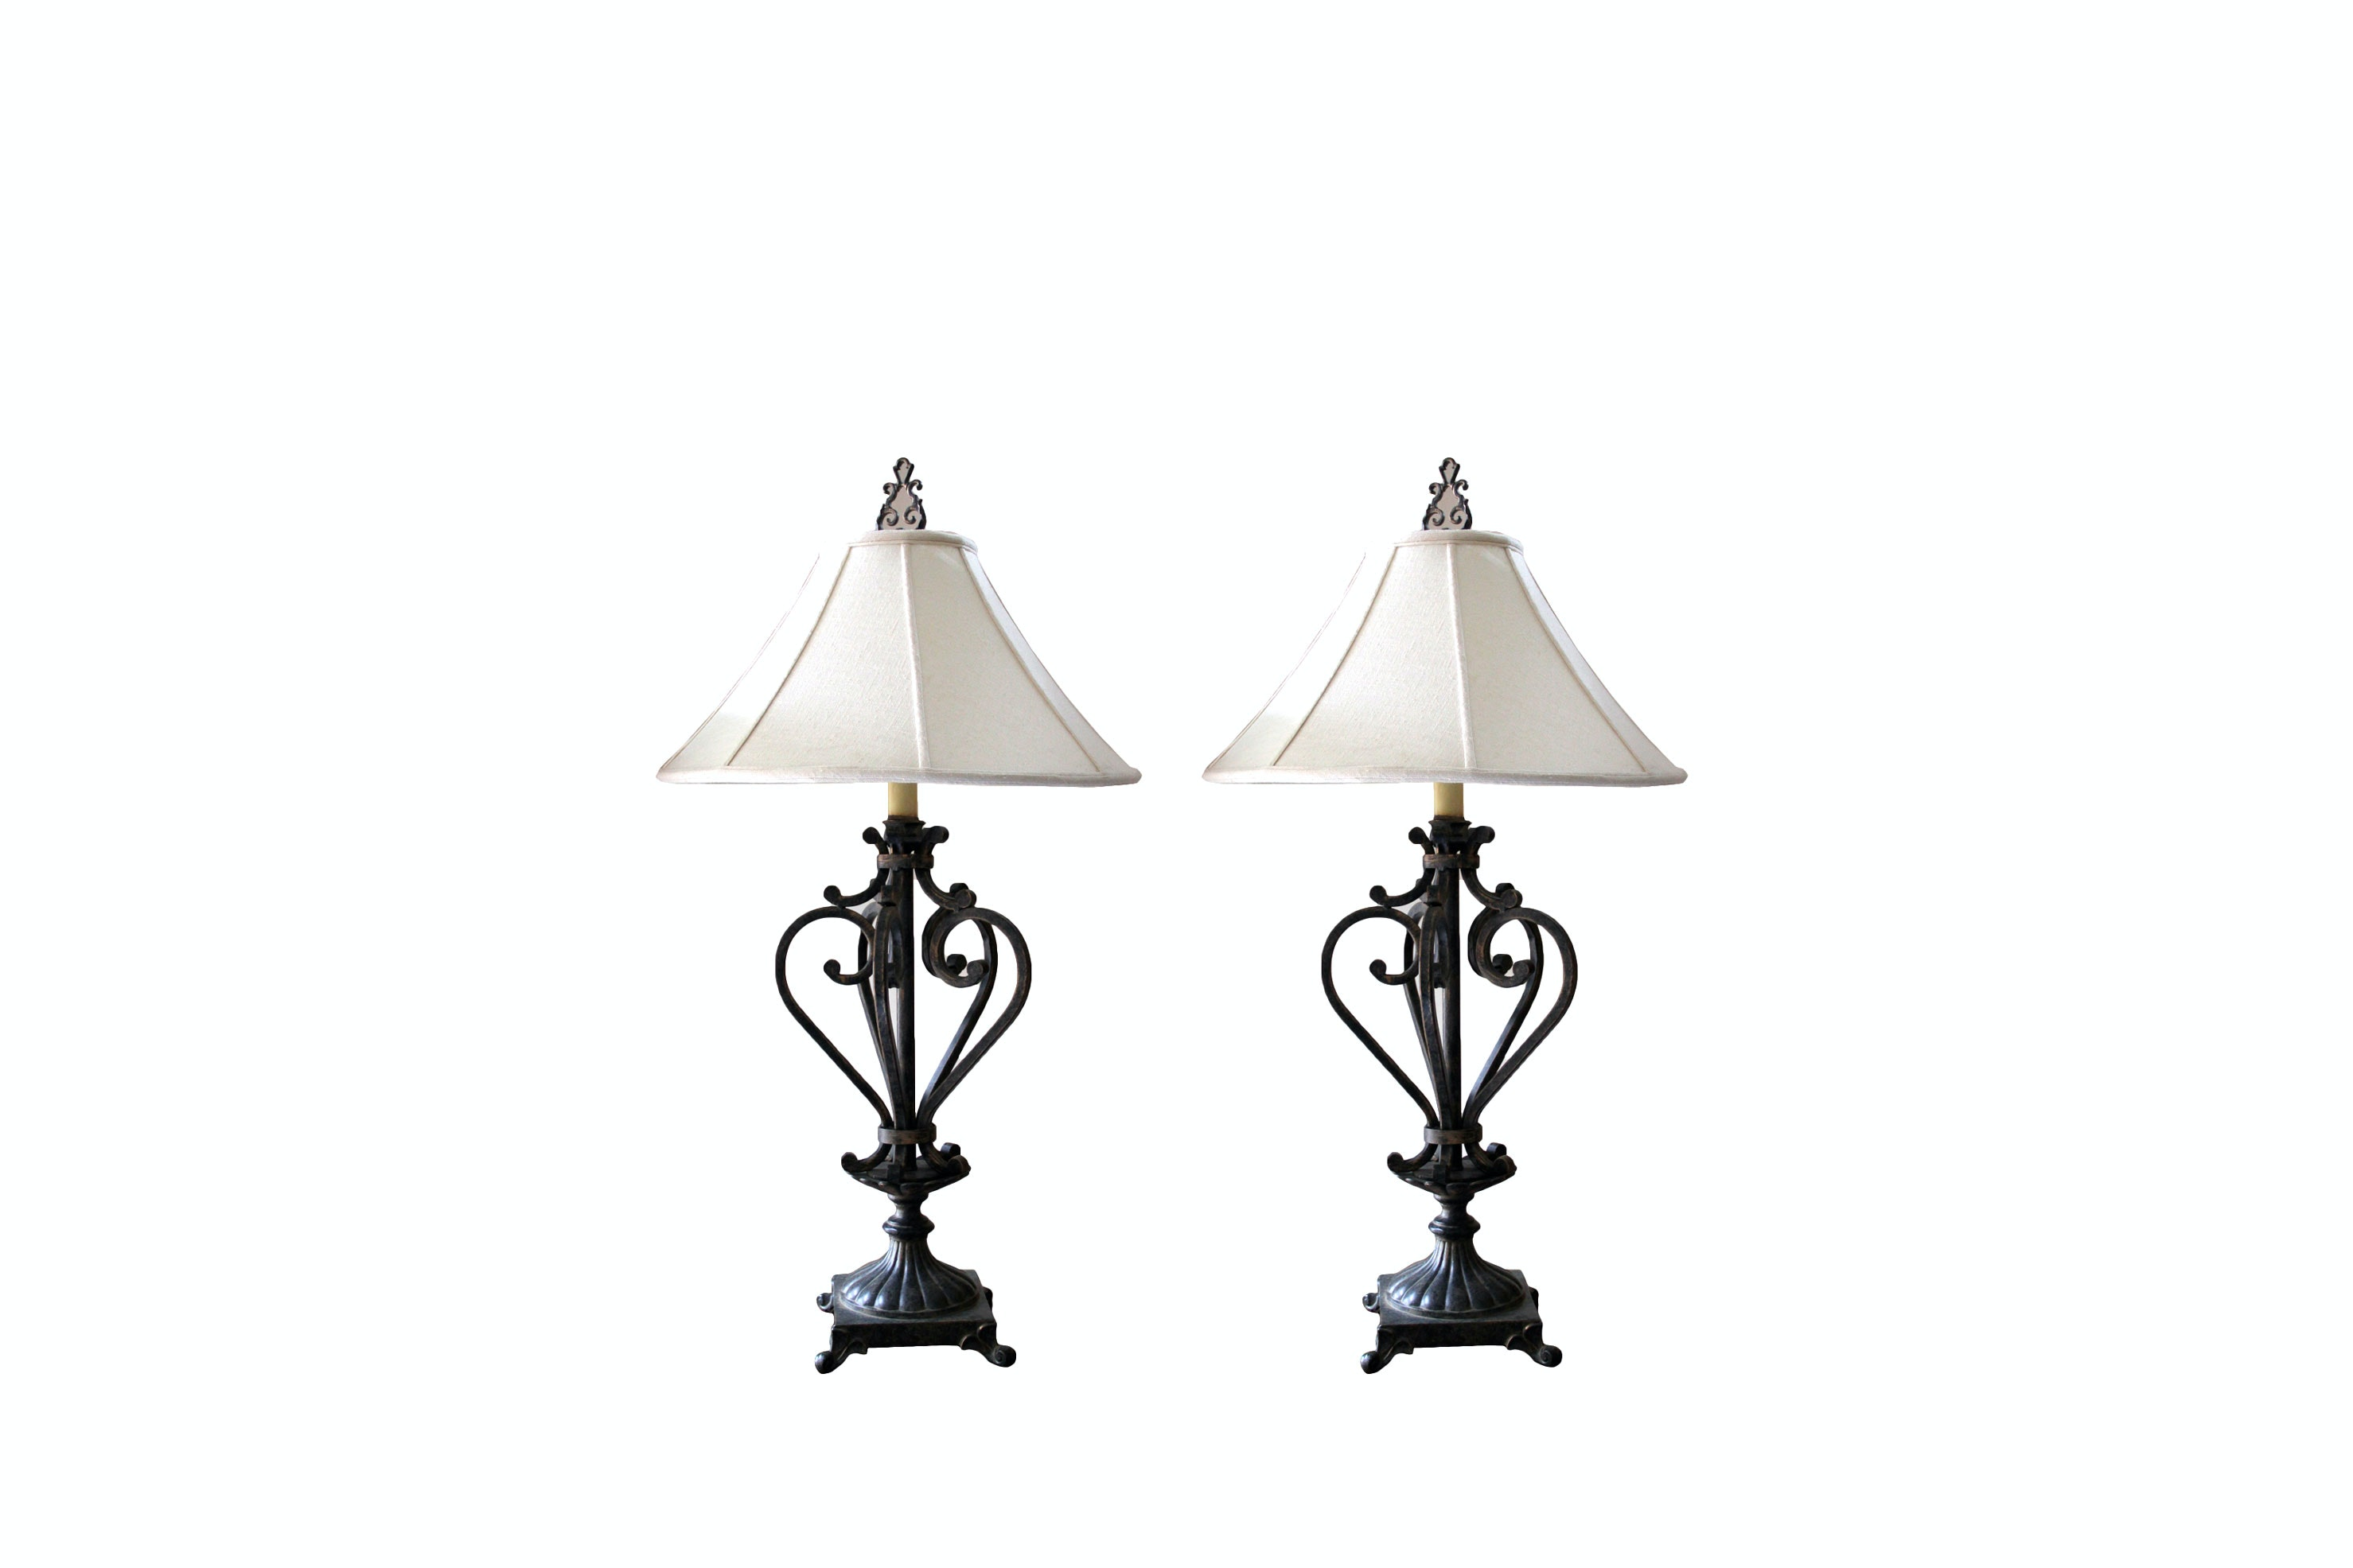 Pair of Iron Table Lamps from D'Hierro